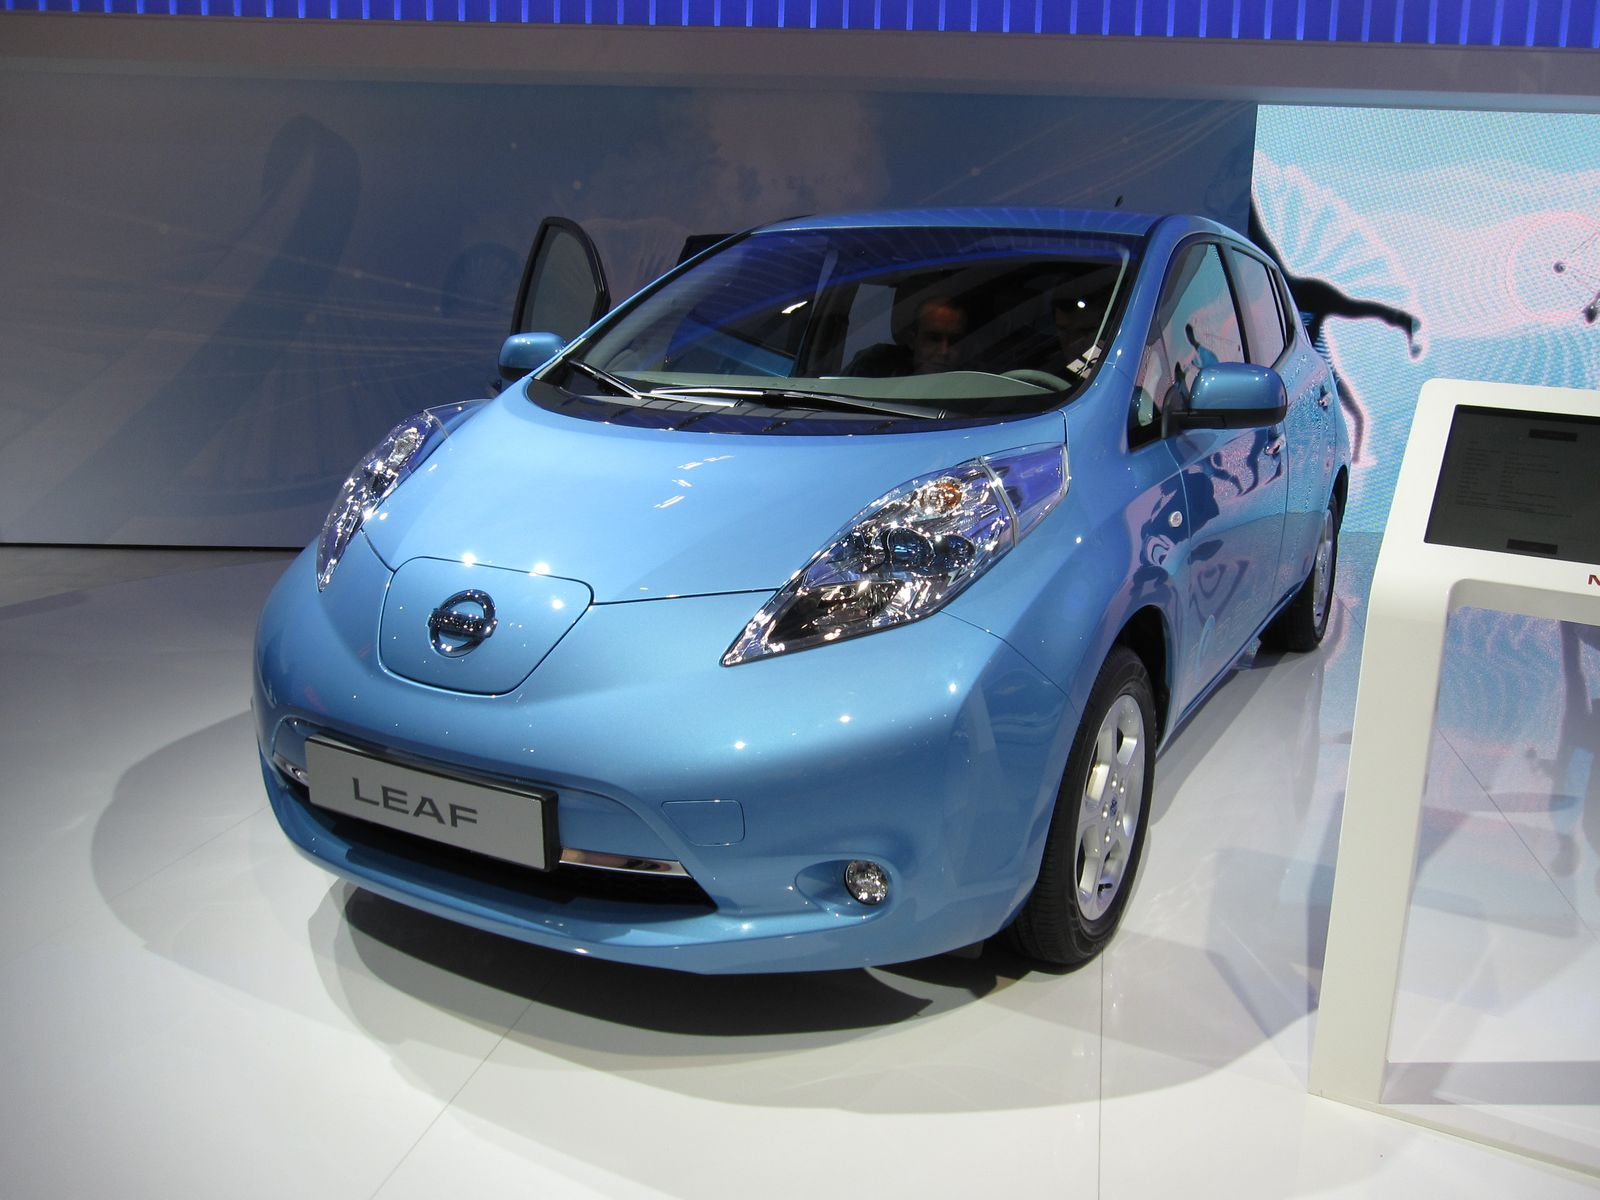 le prix de vente de la nissan leaf en suisse 49 950 chf soit 36 249 euros. Black Bedroom Furniture Sets. Home Design Ideas